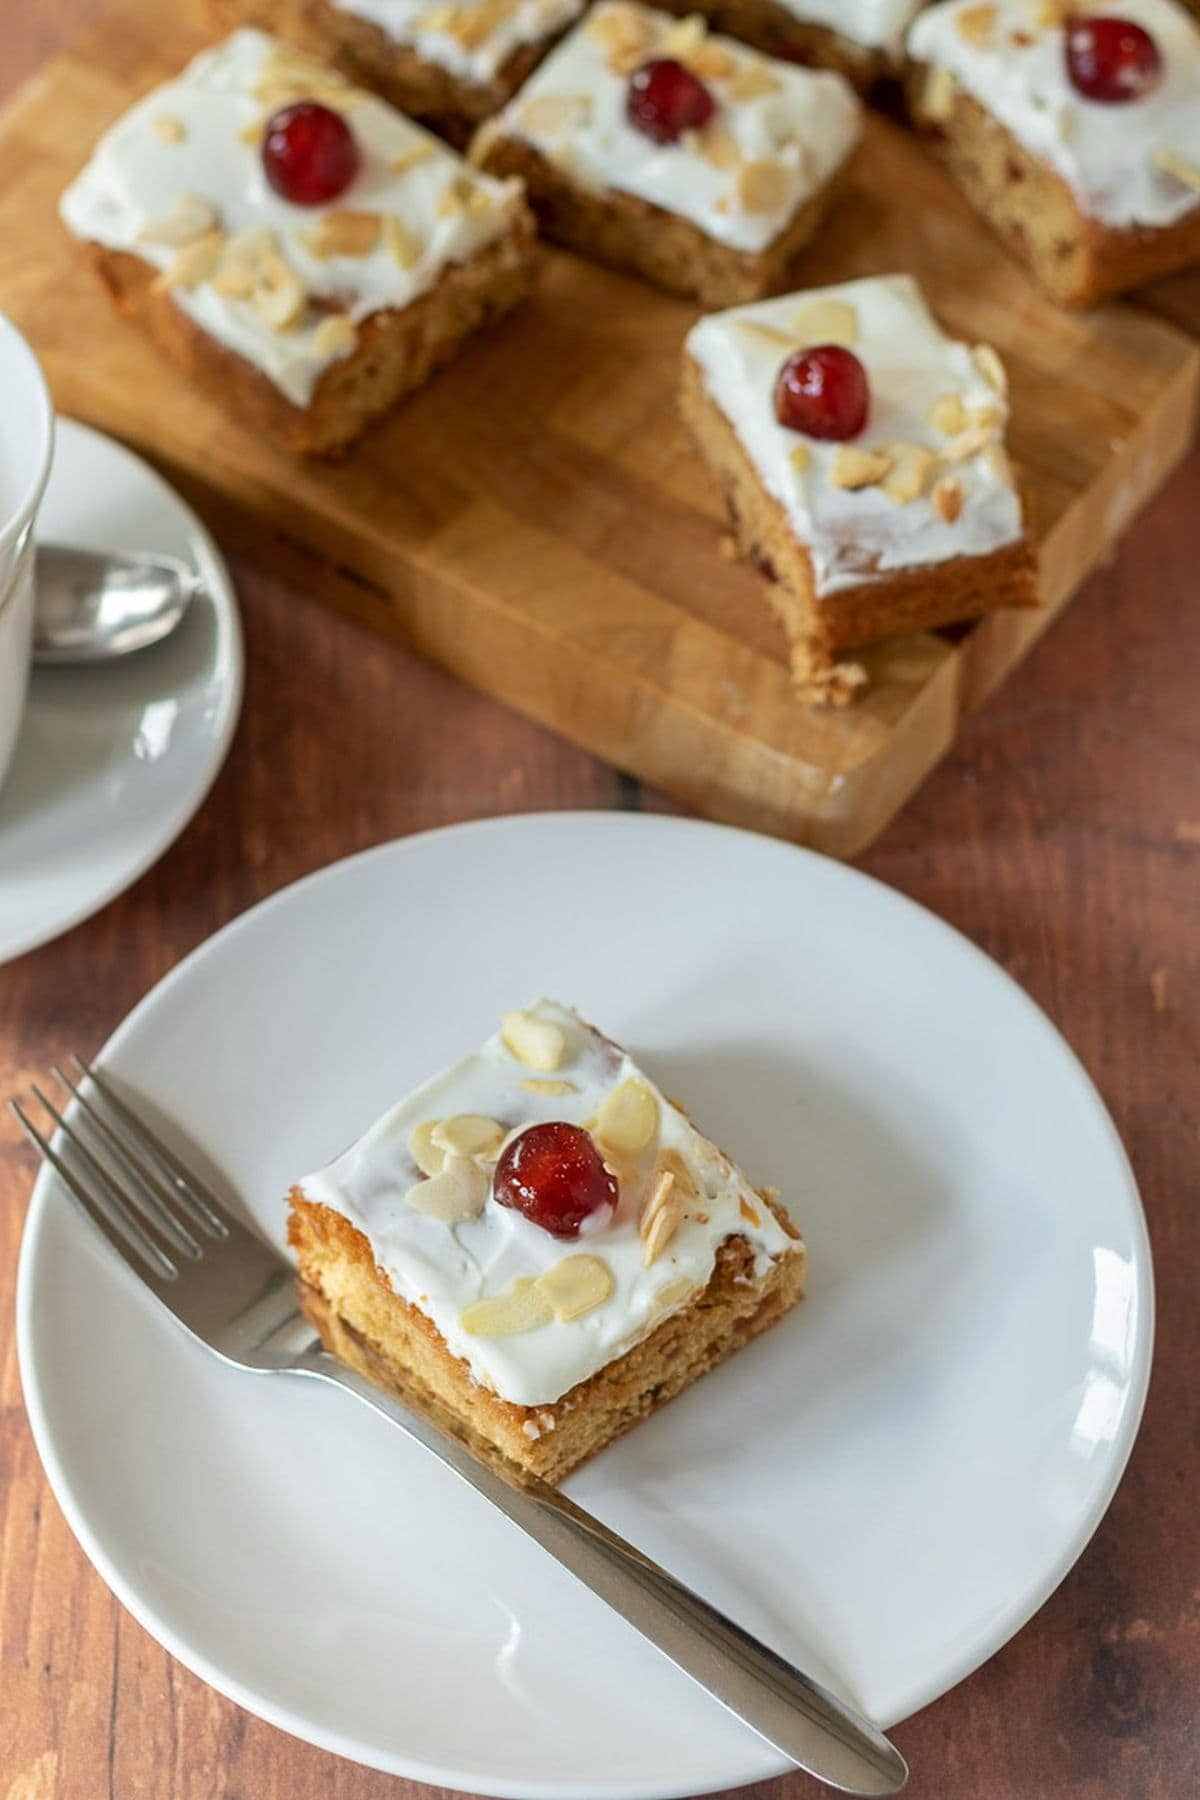 Birds eye view of a slice of cherry Bakewell tray bake served on a white plate with a fork to the side. Chopping board with the rest of the tray bake squares on in the background.